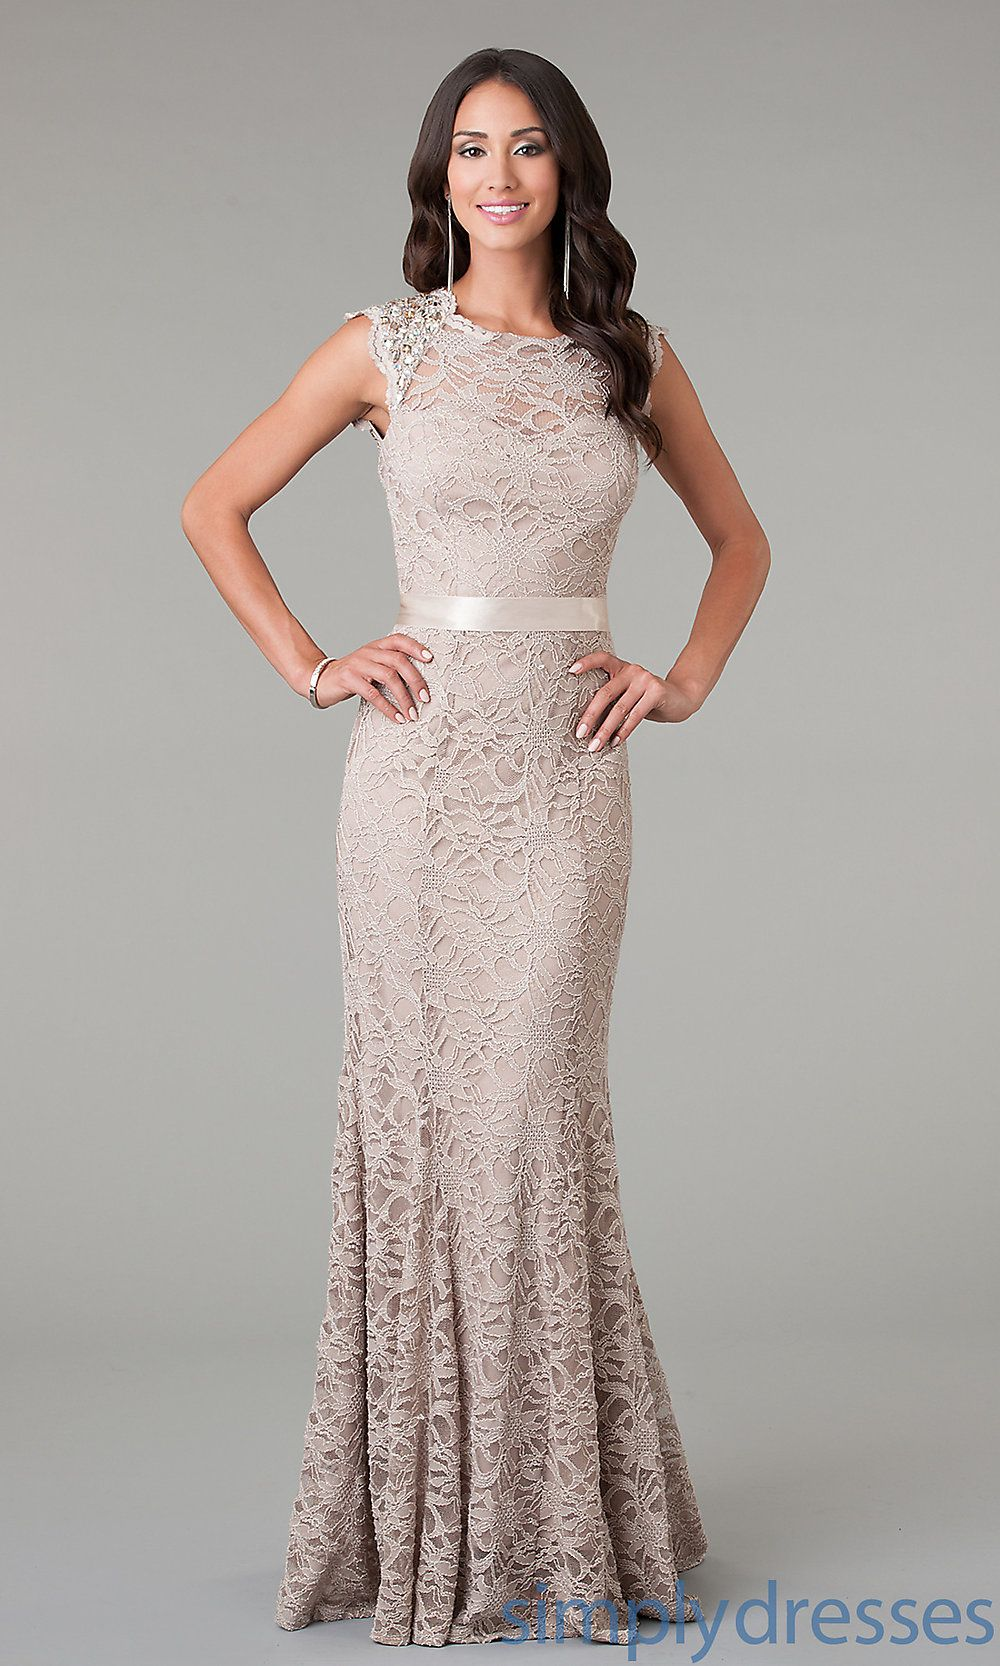 Long Lace Morgan Open Back Formal Gown - Simply Dresses